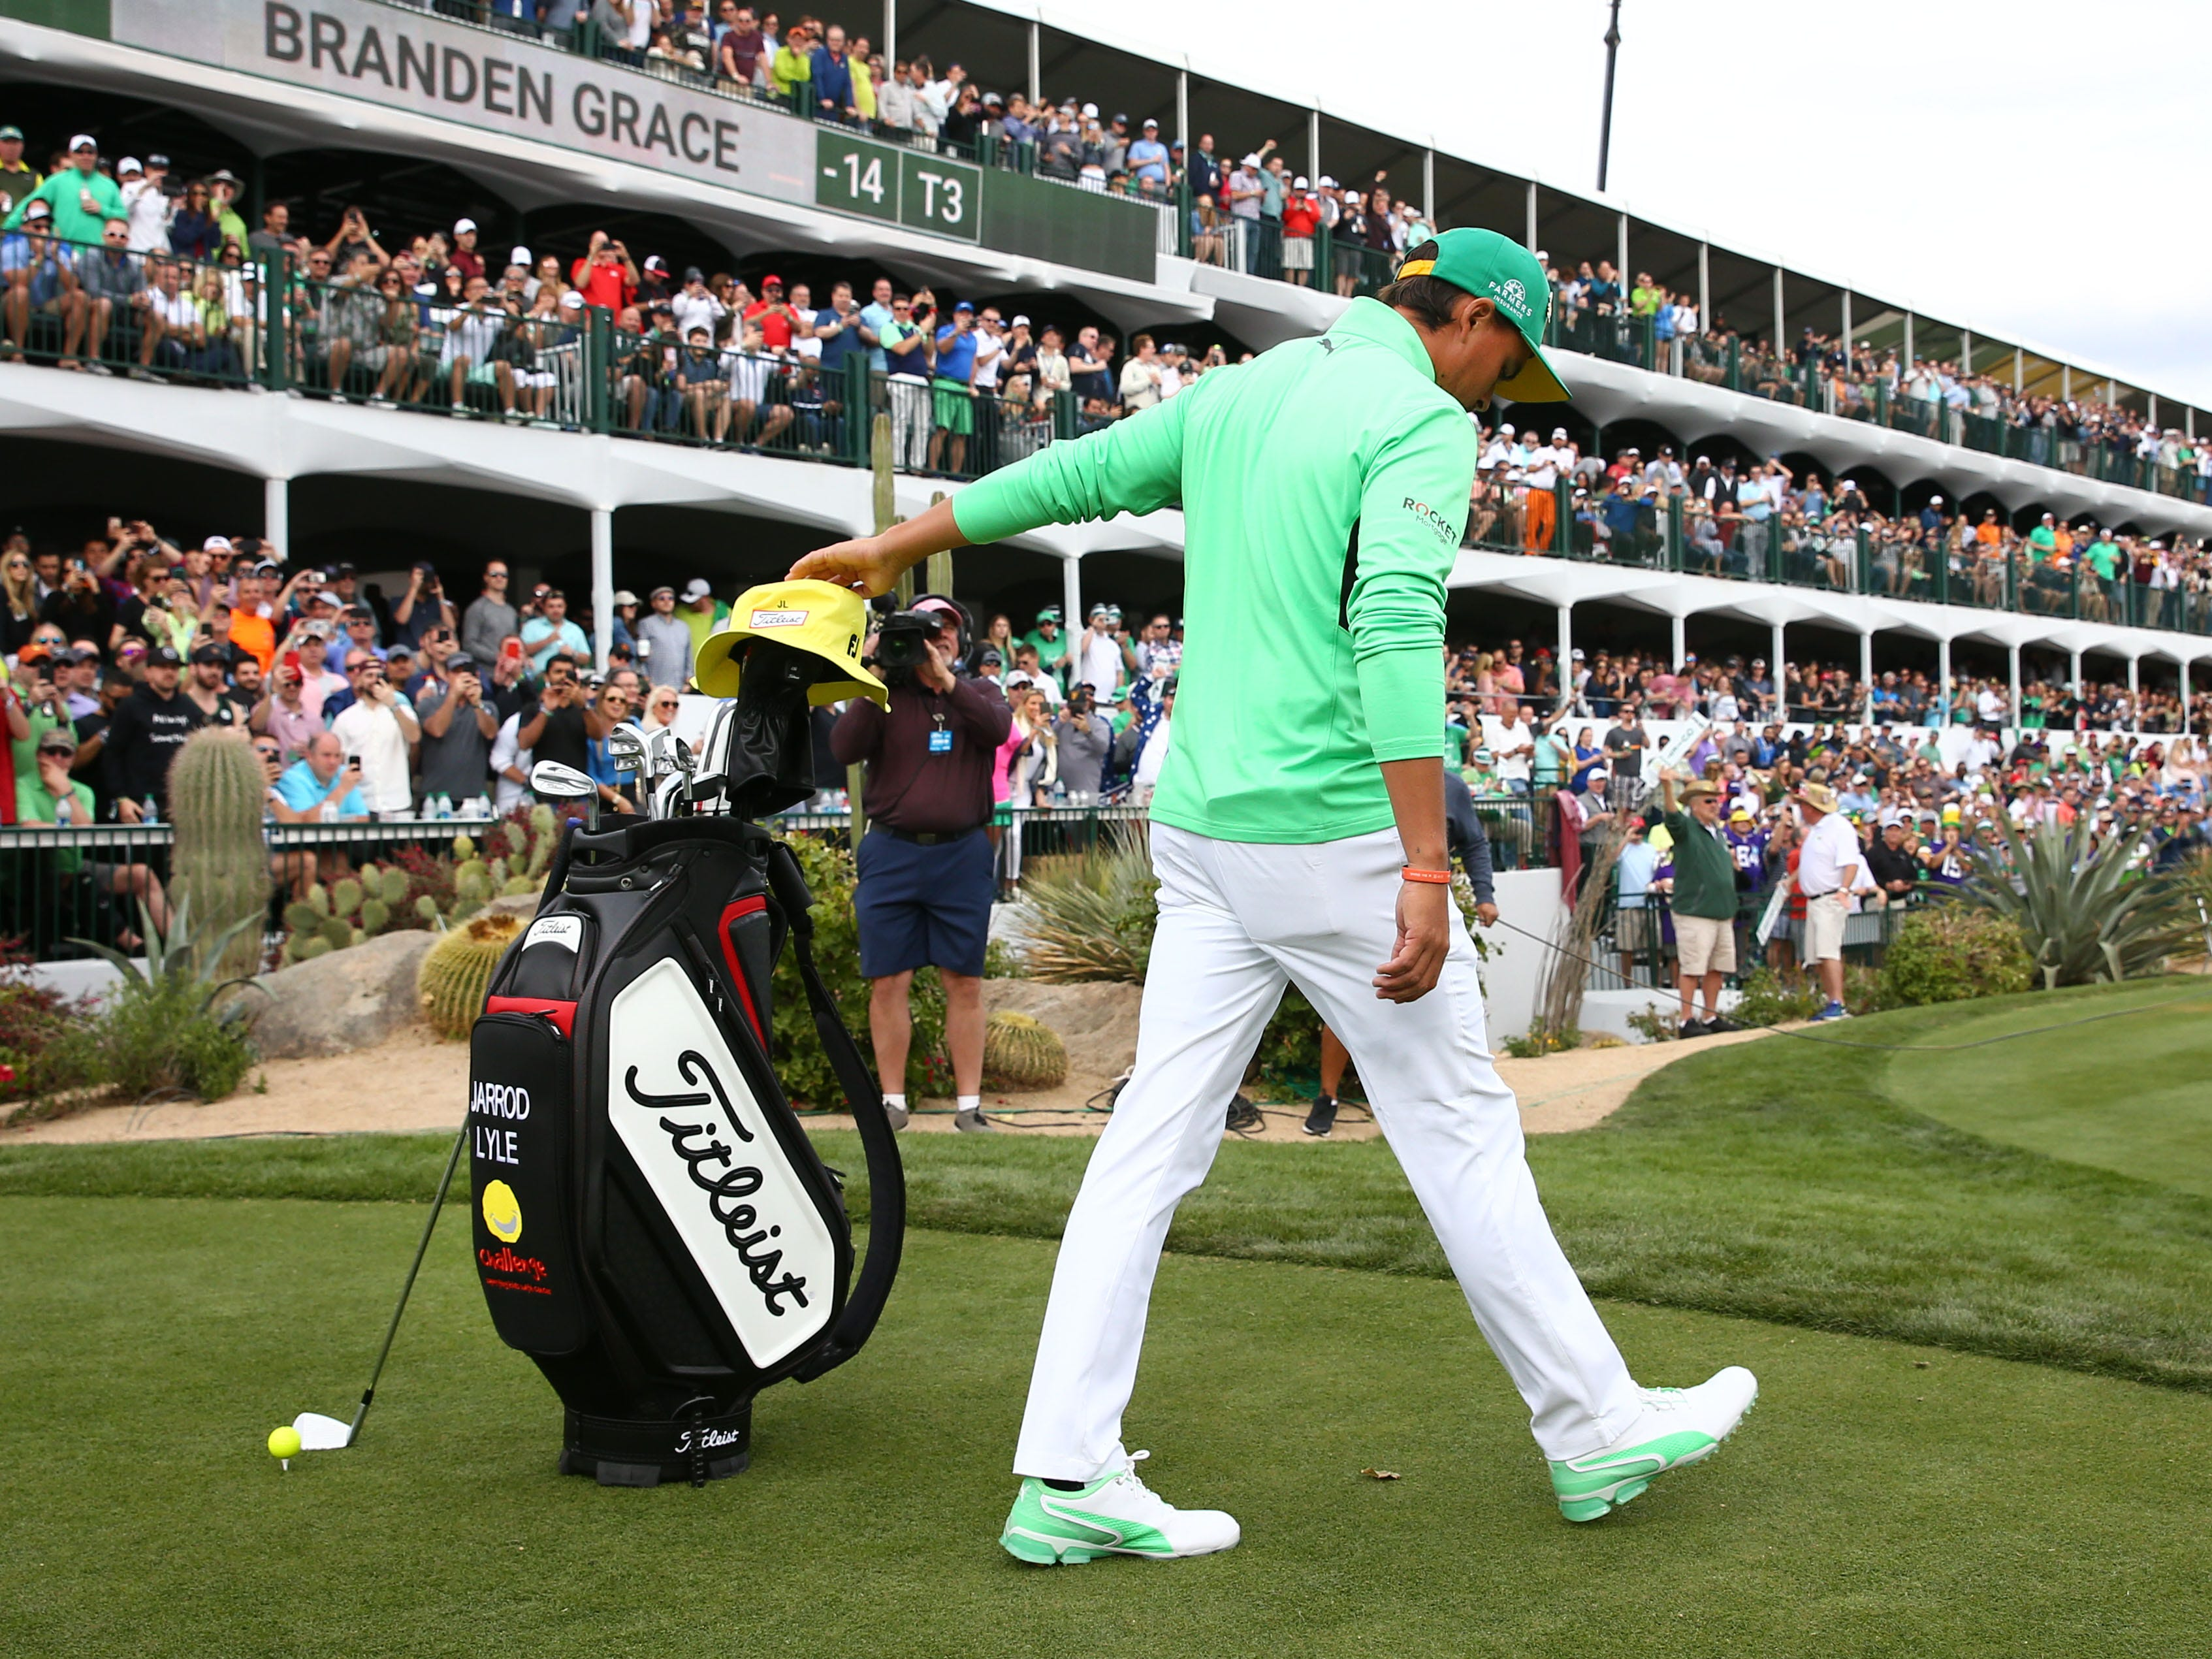 Rickie Fowler reaches out and touches the yellow hat to pay tribute at late Jarrod Lyle, who died last summer from leukemiaduring third round action on the 16th hole on Feb. 2 during the Waste Management Phoenix Open at the TPC Scottsdale Stadium Course.